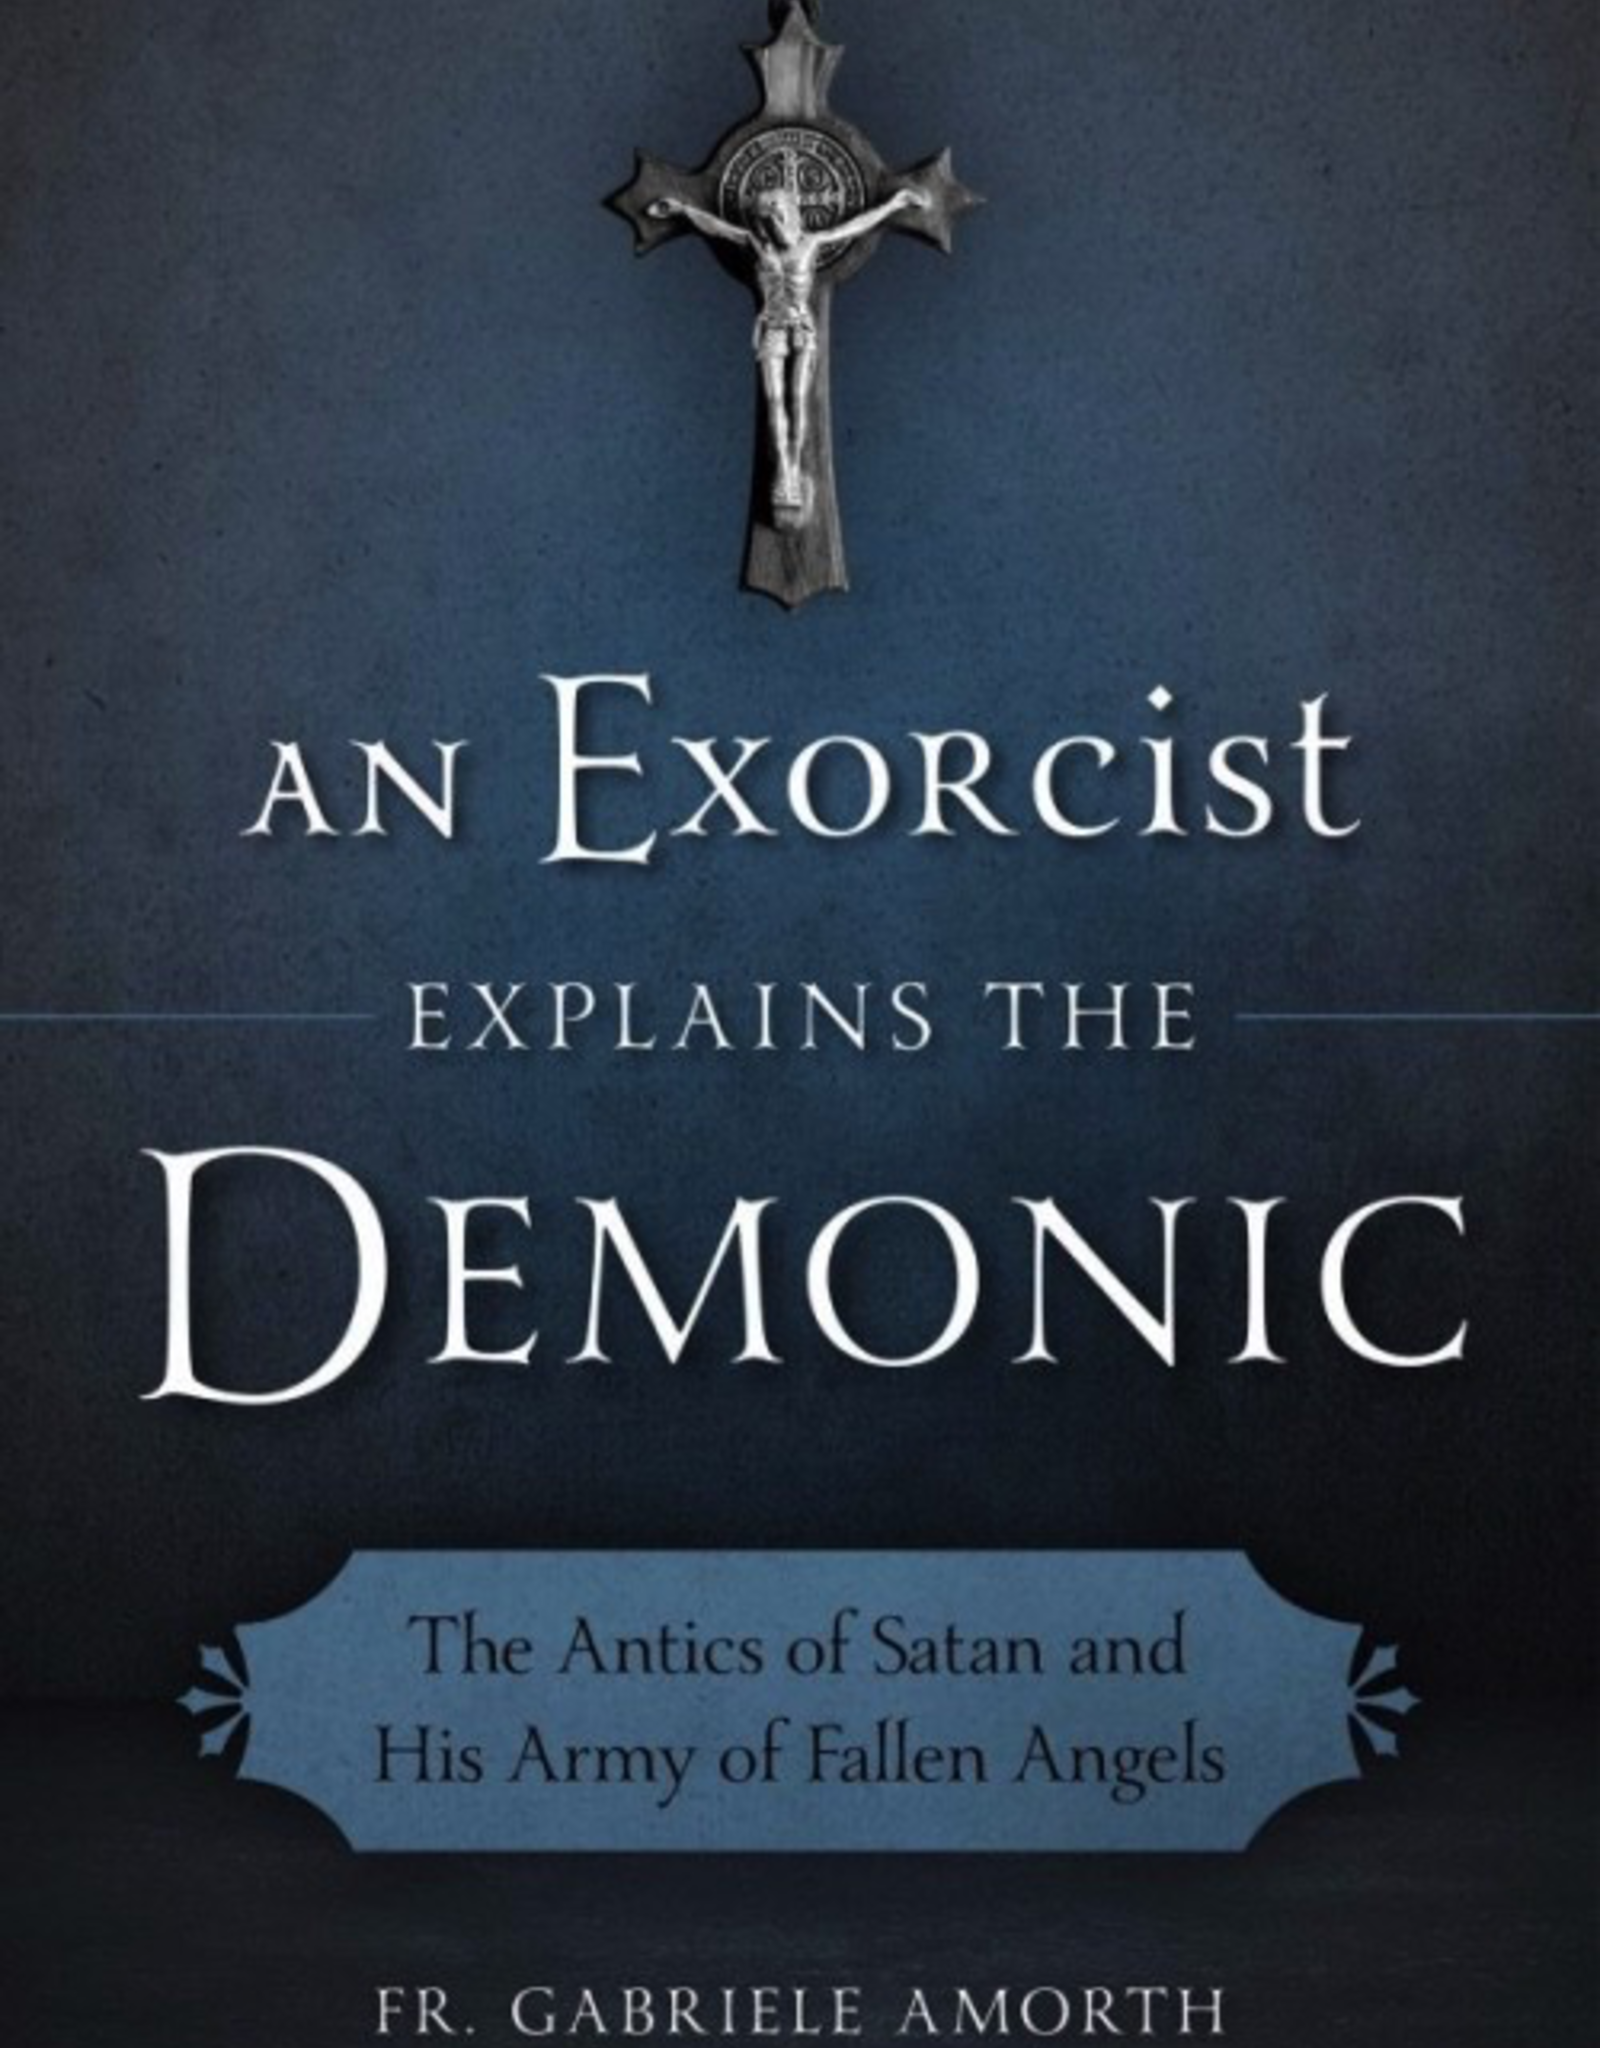 Sophia Institute An Exorcist Explains the Demonic Set:  The Antics of Satan and His Army of Fallen Angels, by Fr. Gabriele Amorth (paperback)